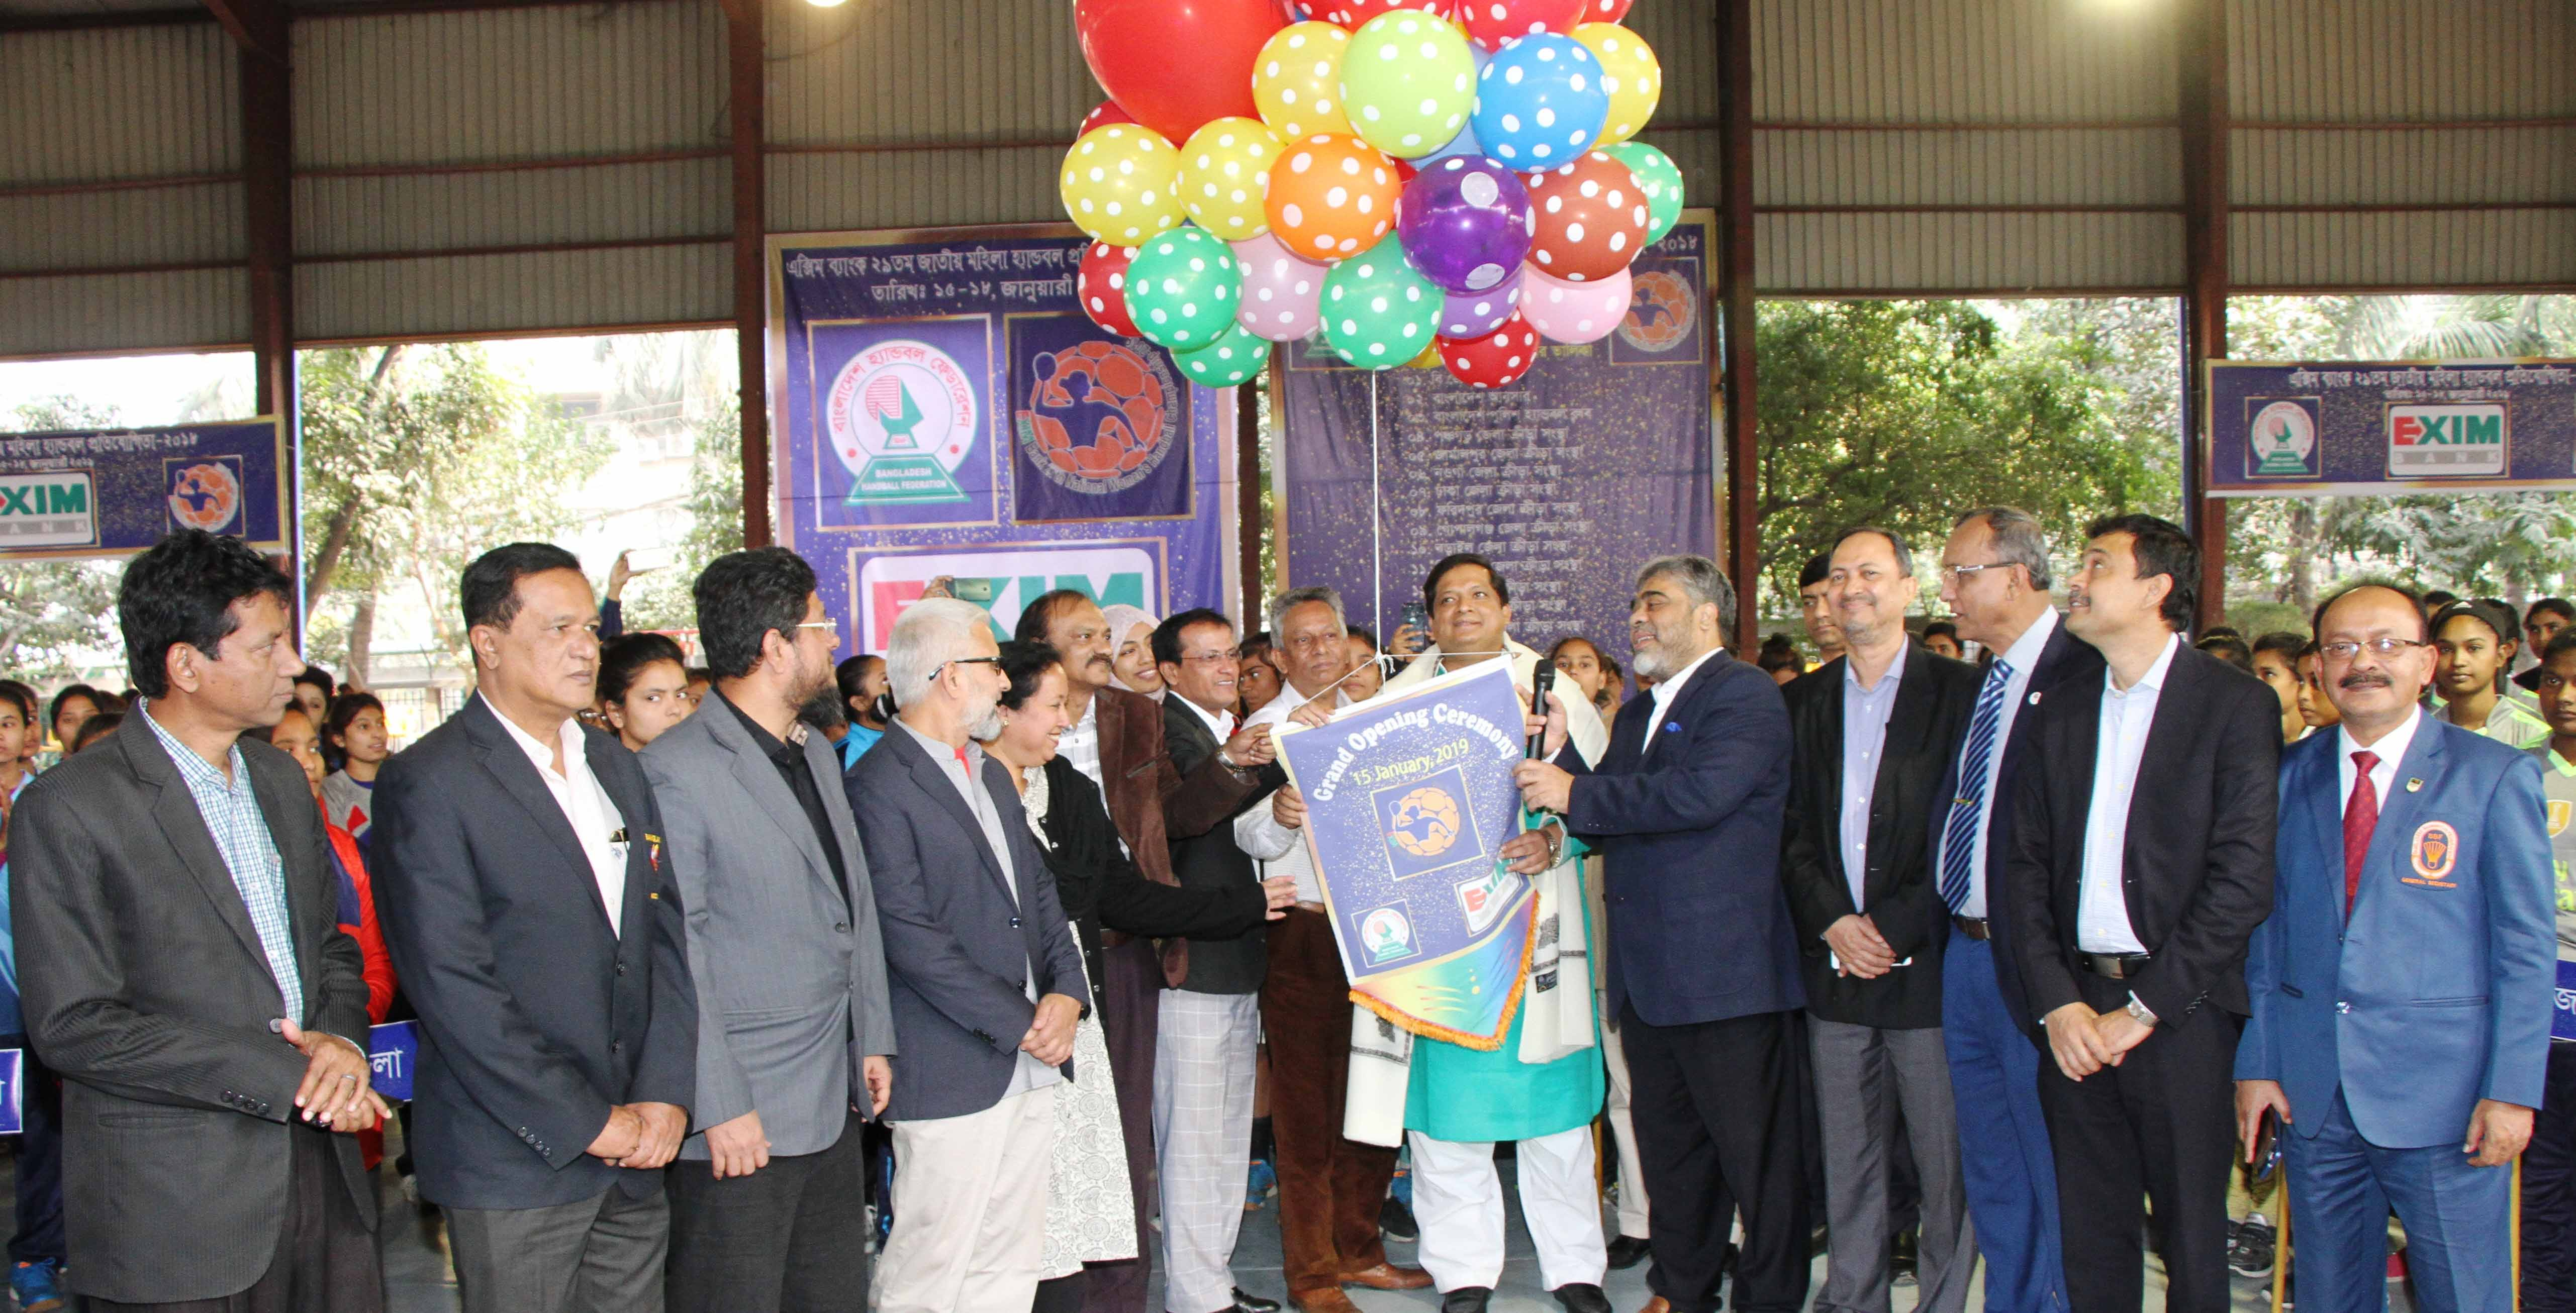 State Minister for Youth and Sports Zahid Ahsan Russell inaugurating the EXIM Bank 29th National Women's Handball Competition by releasing the balloons as the chief guest at Shaheed Captain M Mansur Ali National Handball Stadium on Wednesday.